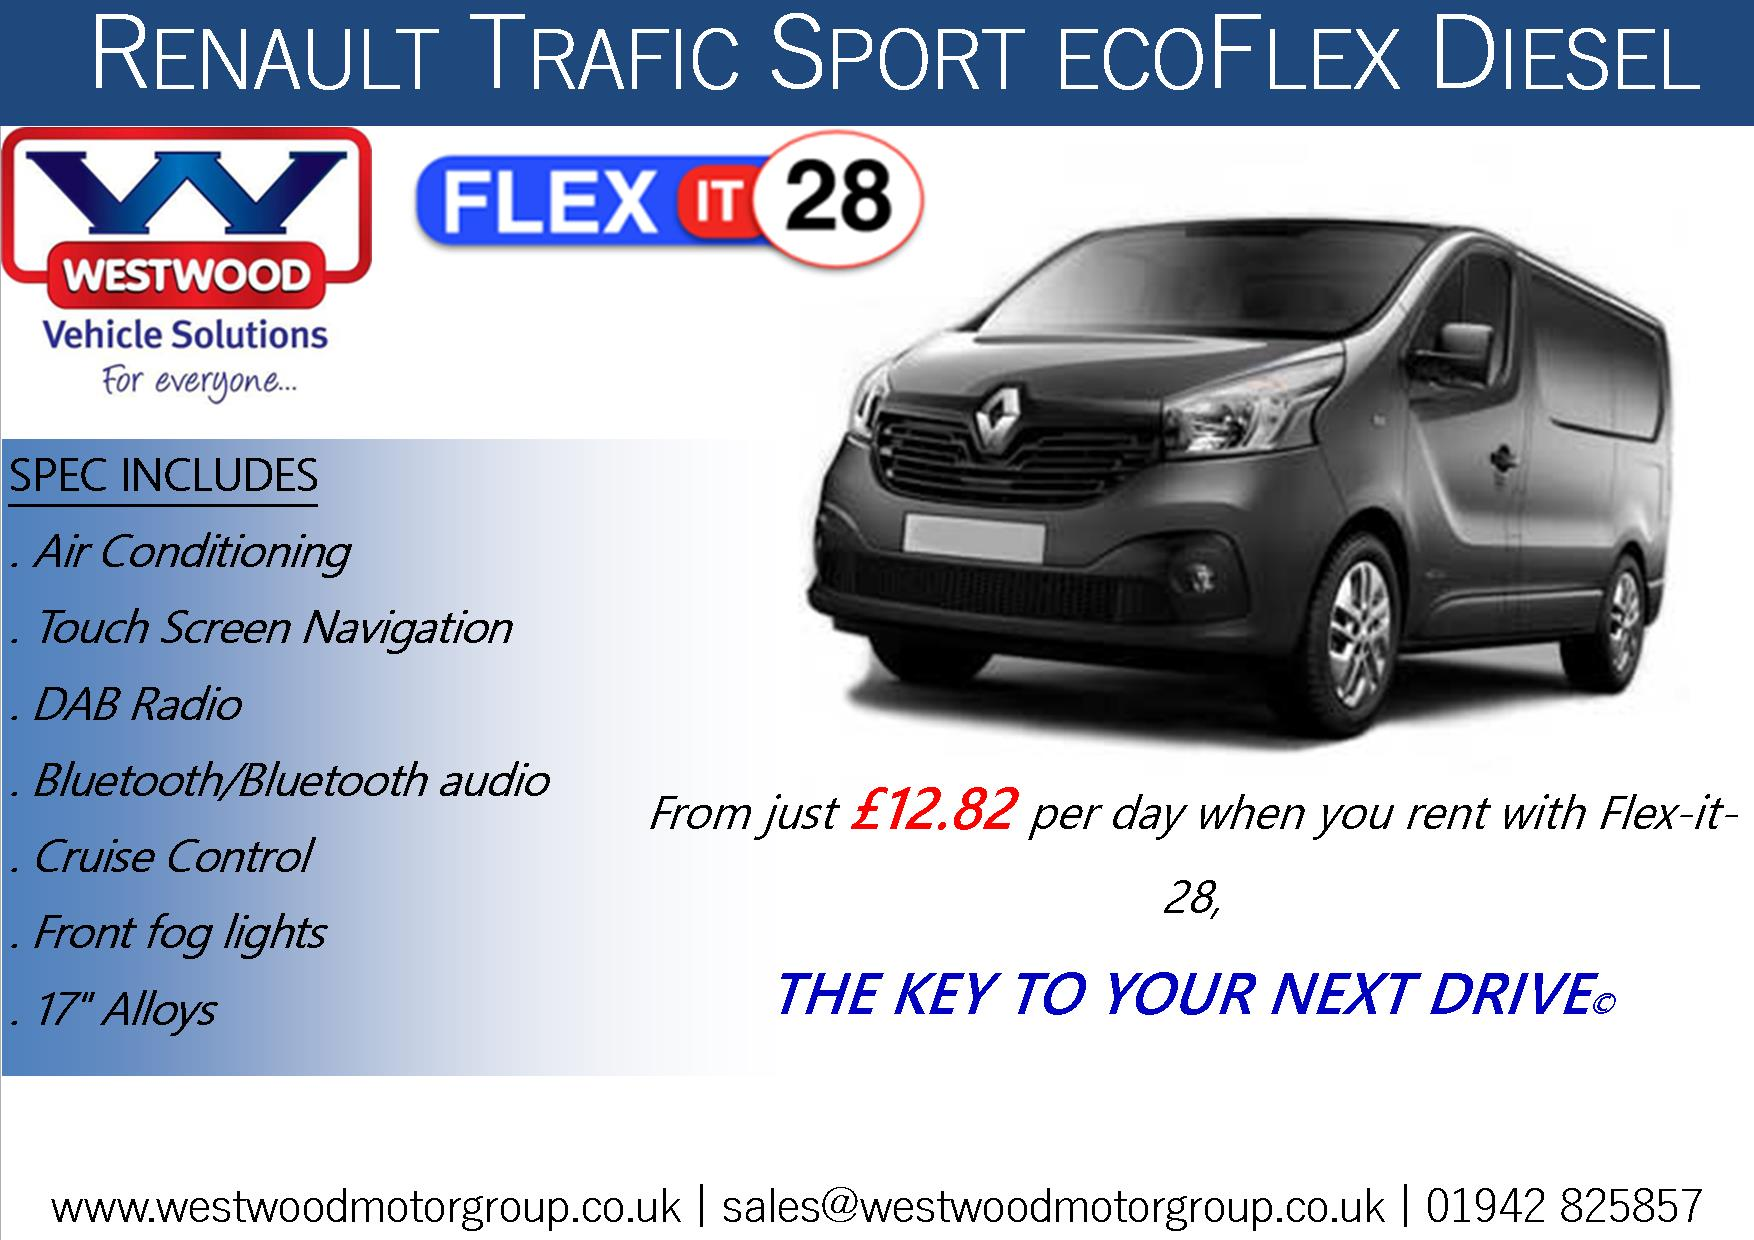 renault flex it